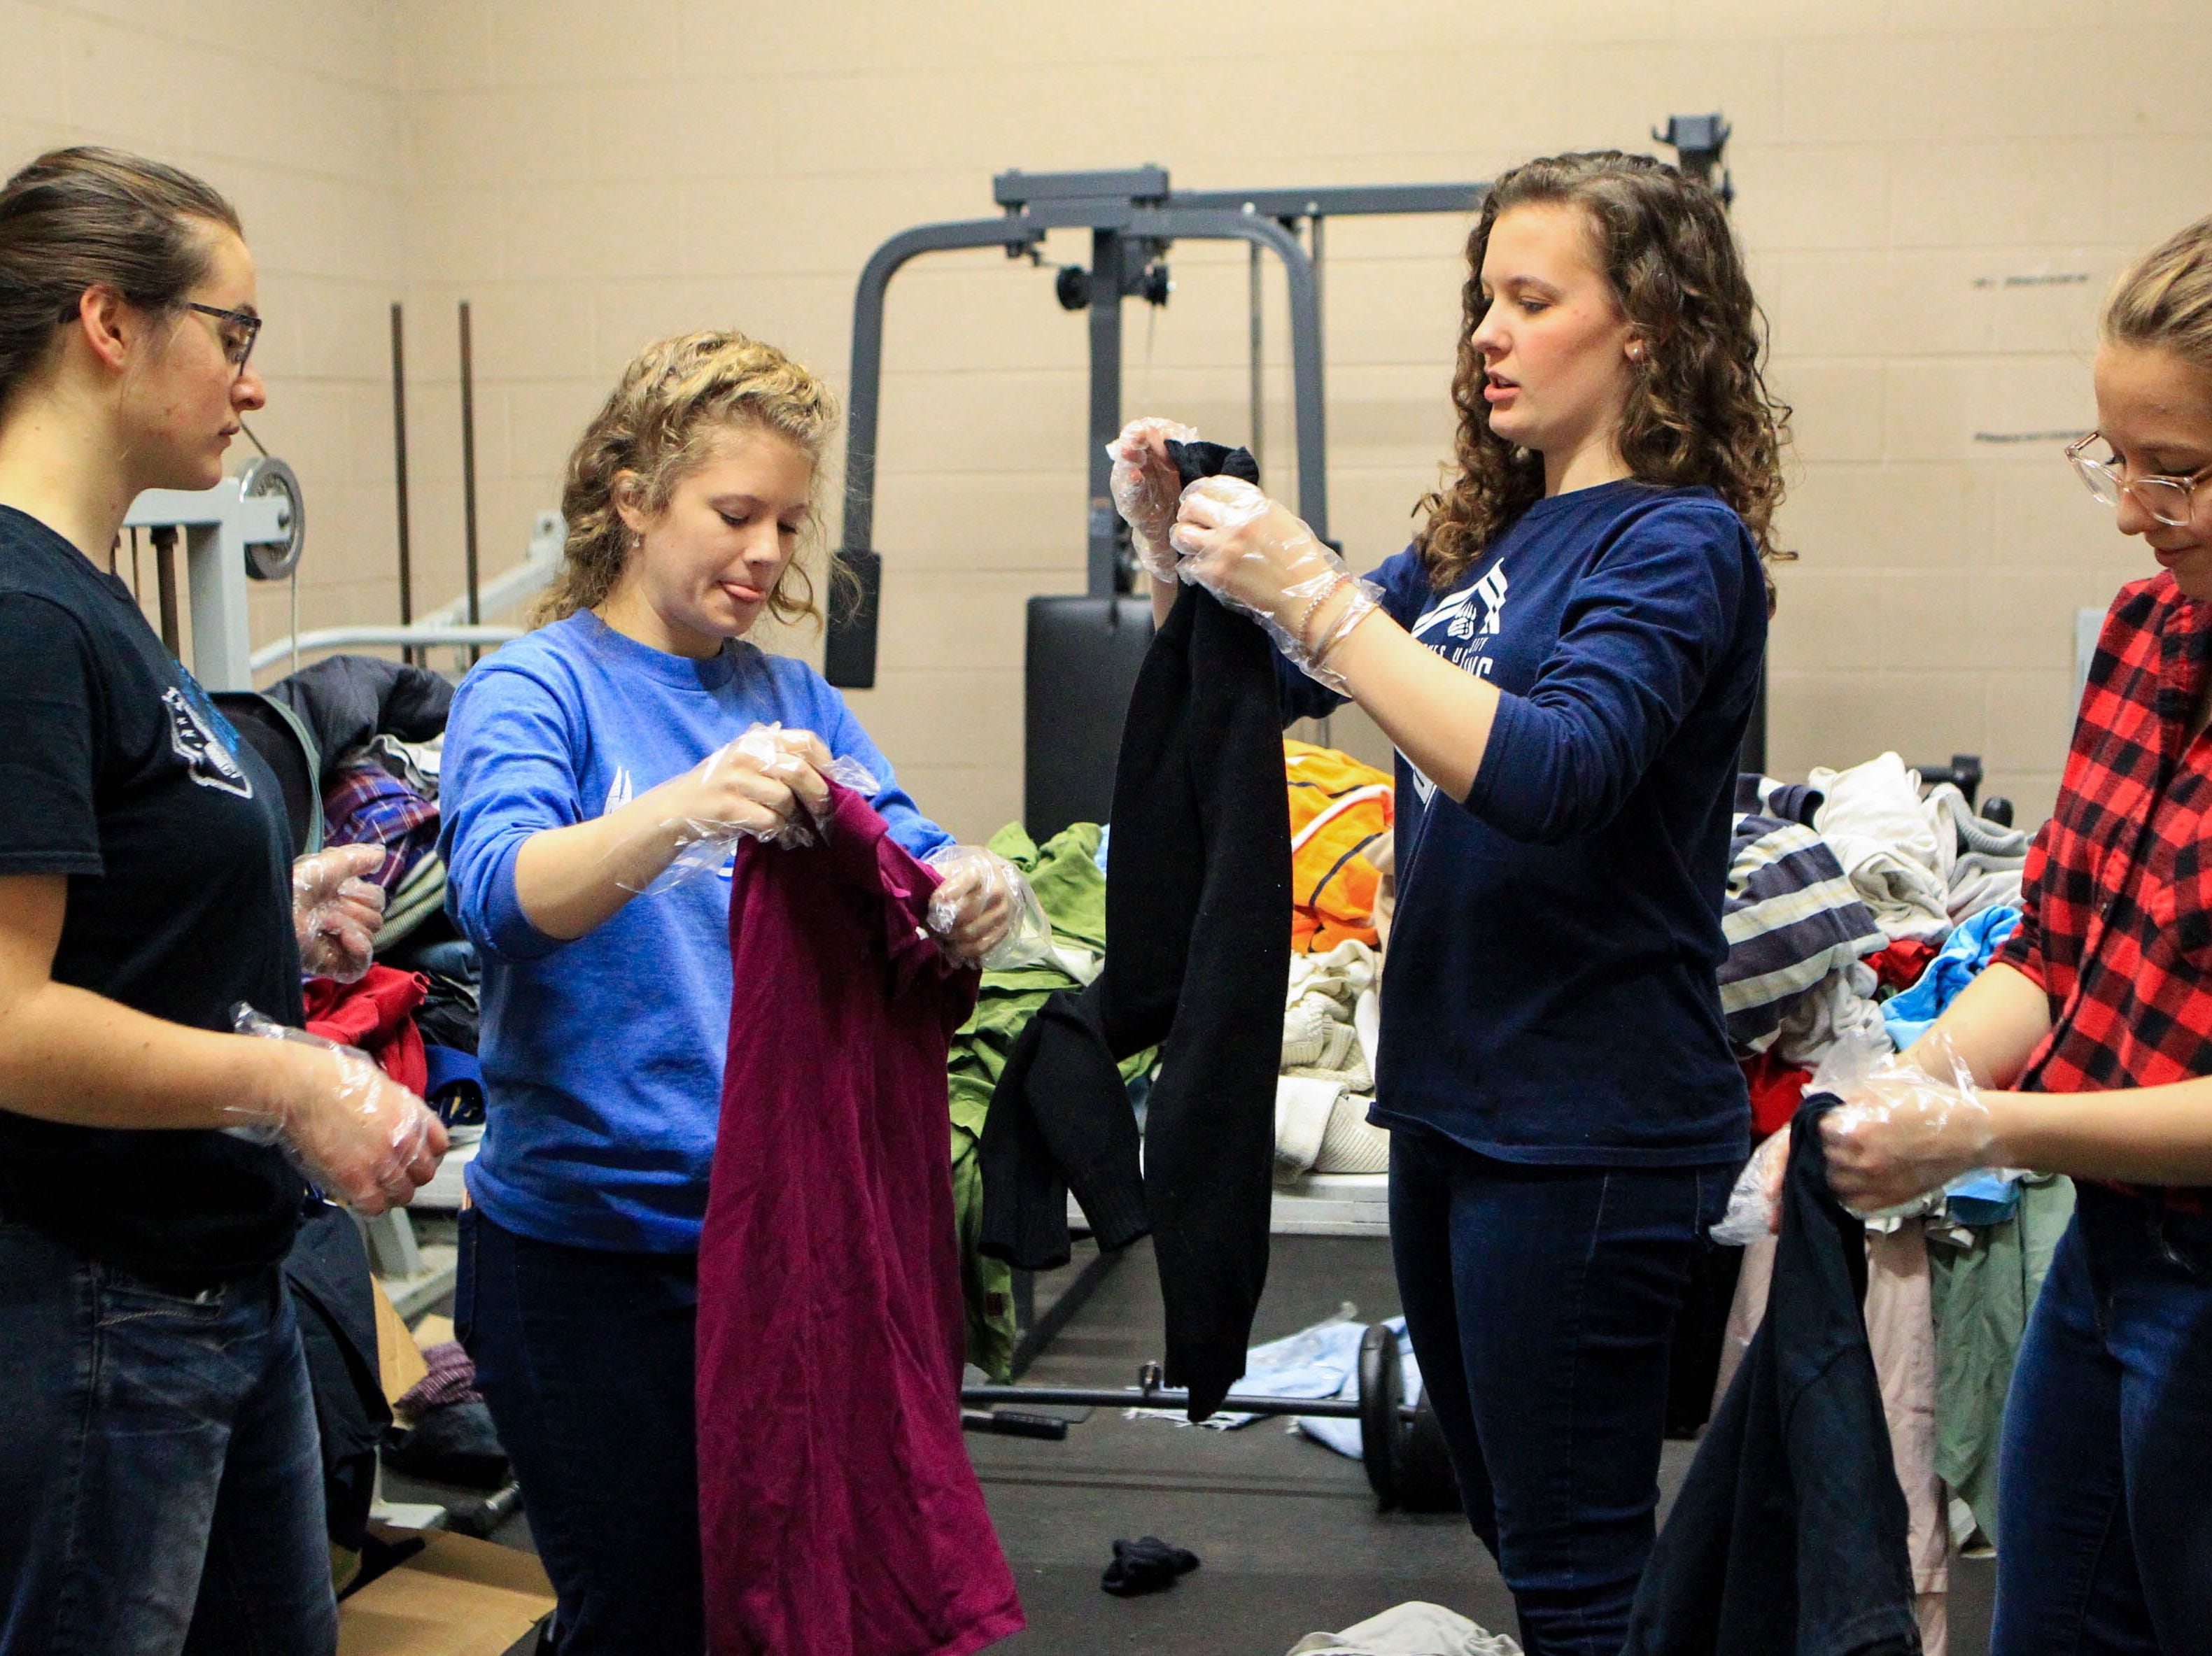 Suzanna Millington, a junior, Taylor Holland, a sophomore, Jennifer Naas, a sophomore, and Karen Mee, a sophomore, sort through pants by sizes at Miracle HillÕs Greenville Rescue Mission on Martin Luther King, Jr. Day Monday, Jan. 21, 2019.